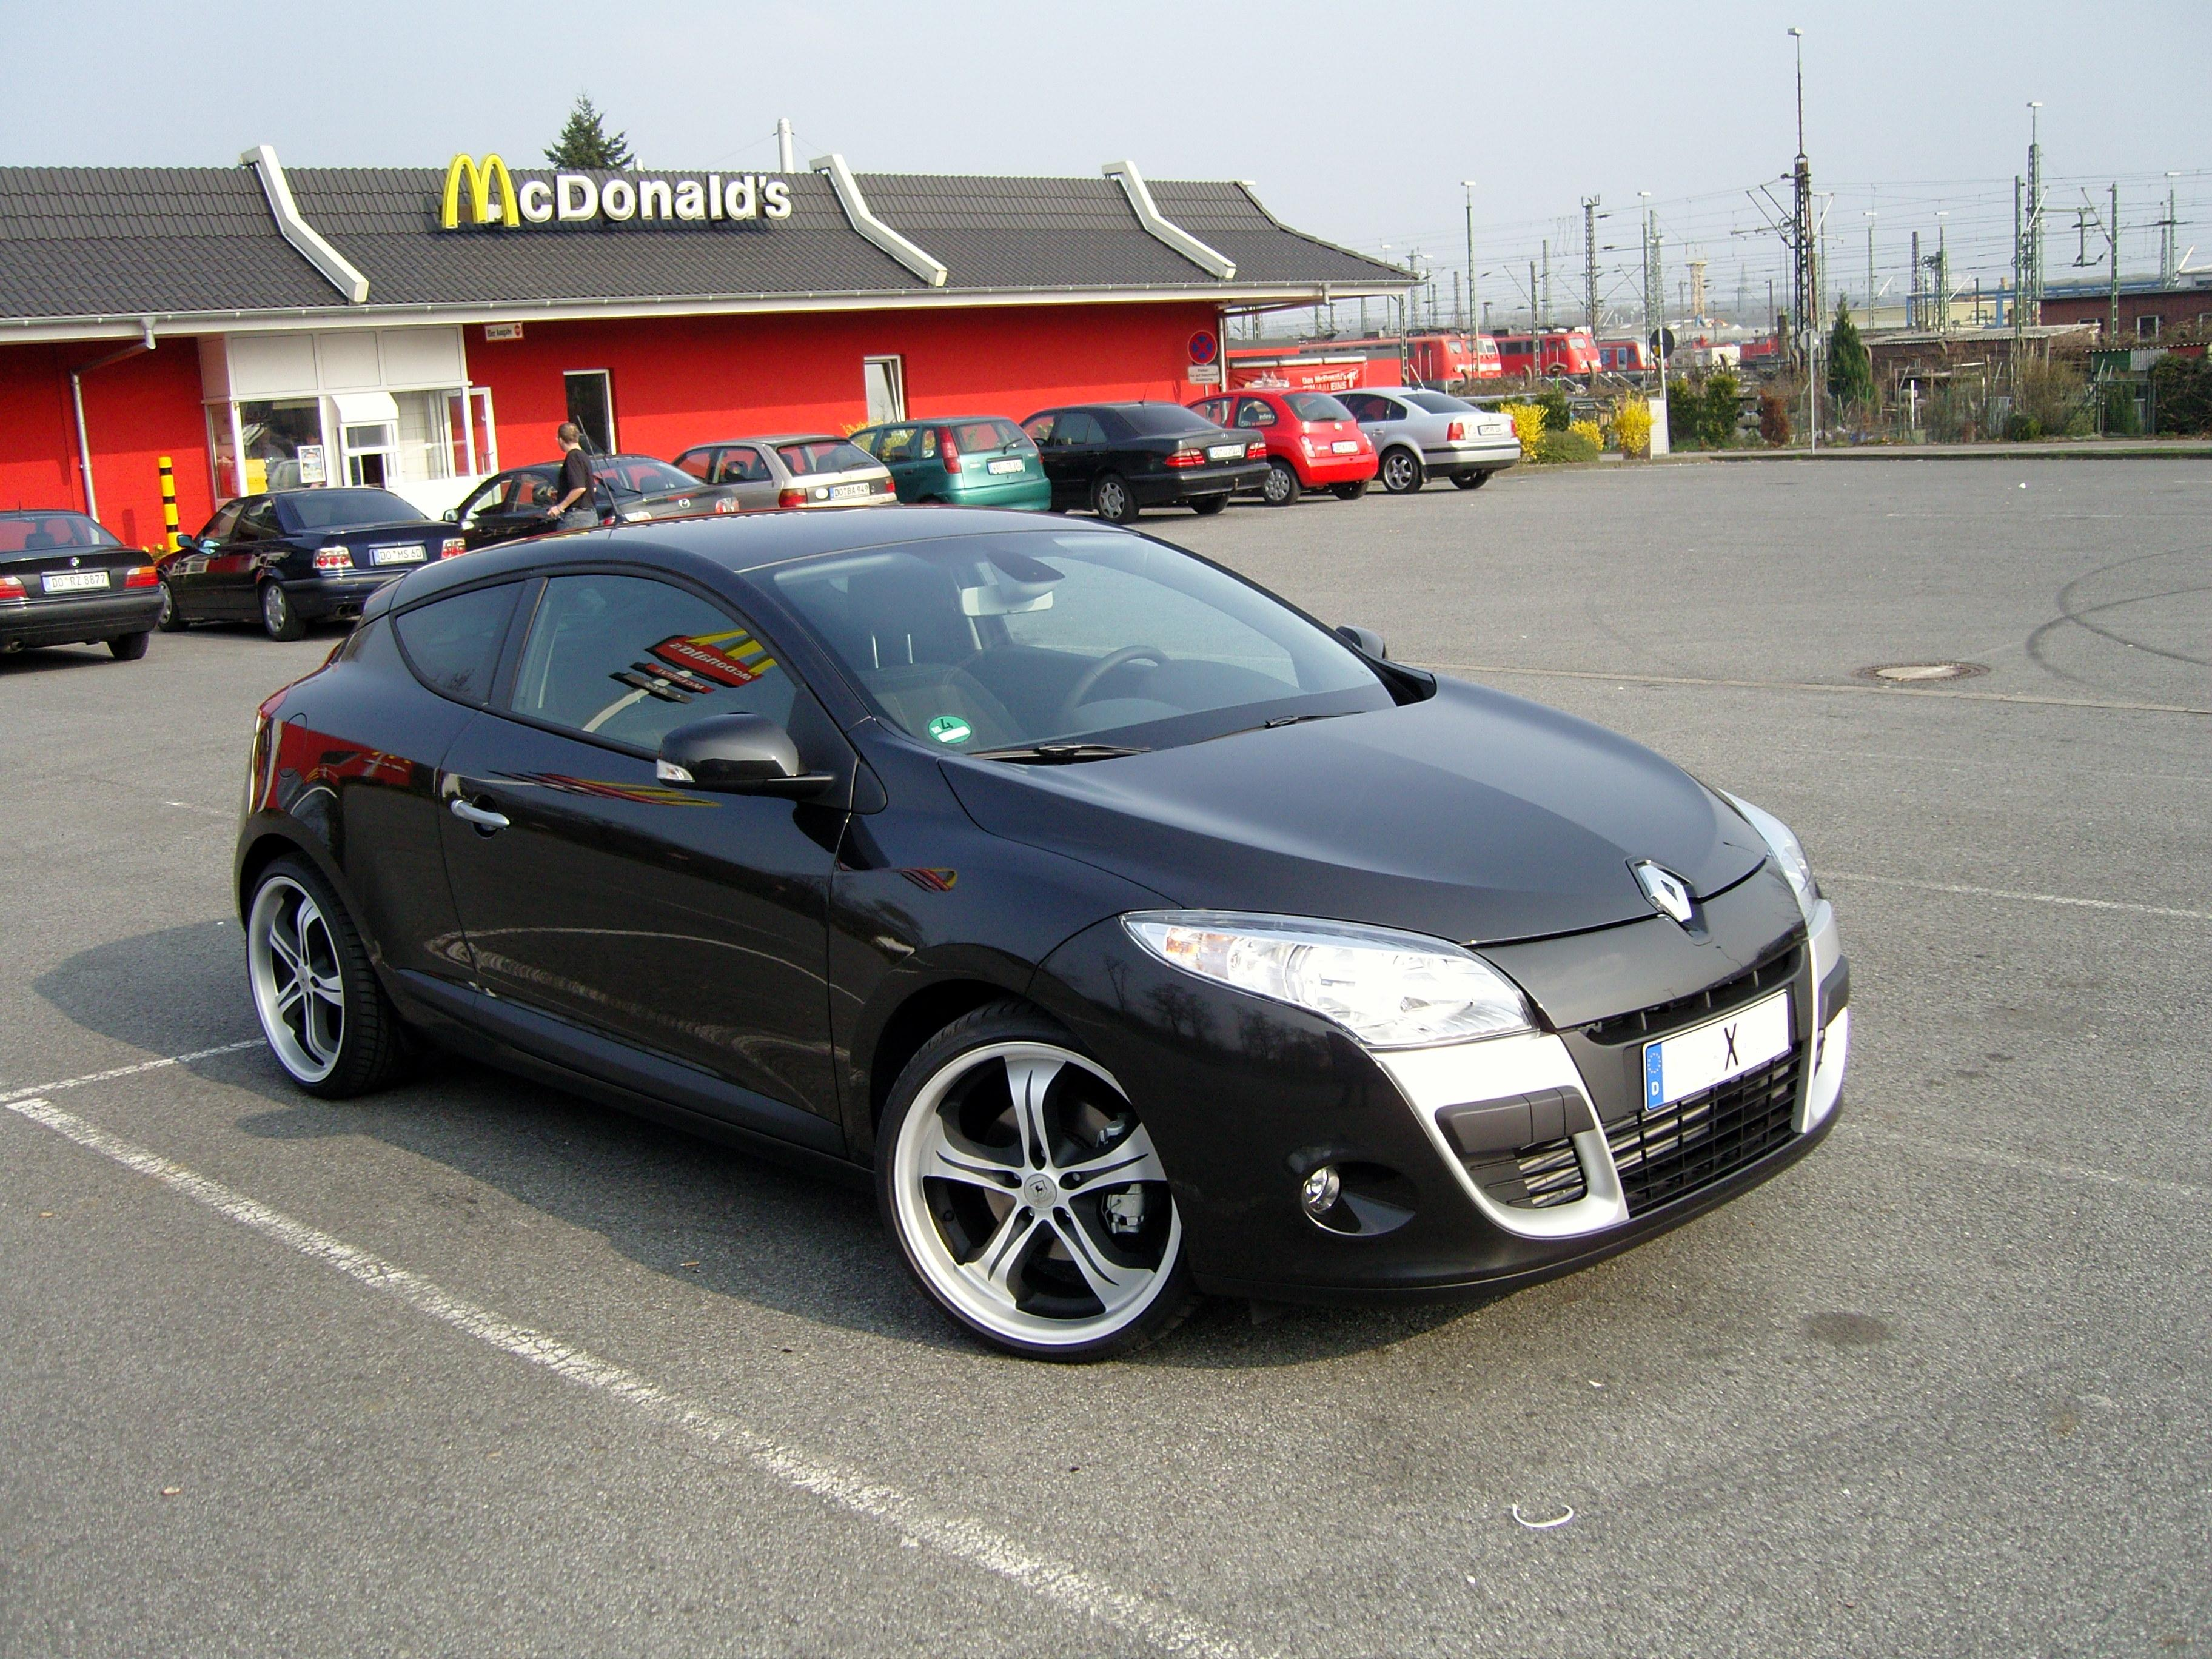 2010 renault megane iii coupe pictures information and specs auto. Black Bedroom Furniture Sets. Home Design Ideas